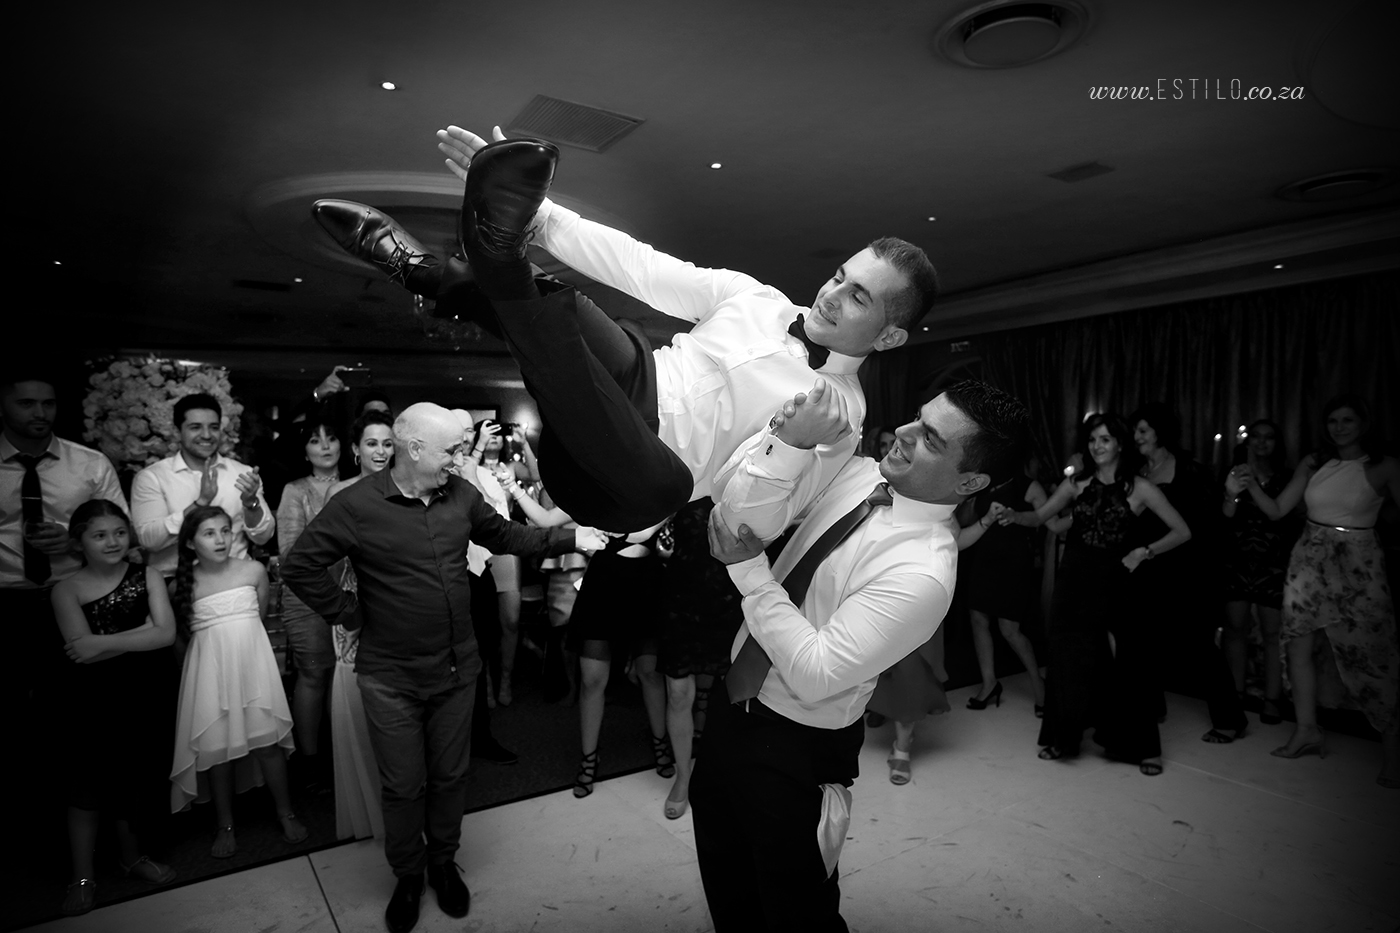 summer_place_wedding_photography_best_wedding_photographers_south_africa_traditional_greek_weddings7 3.jpg